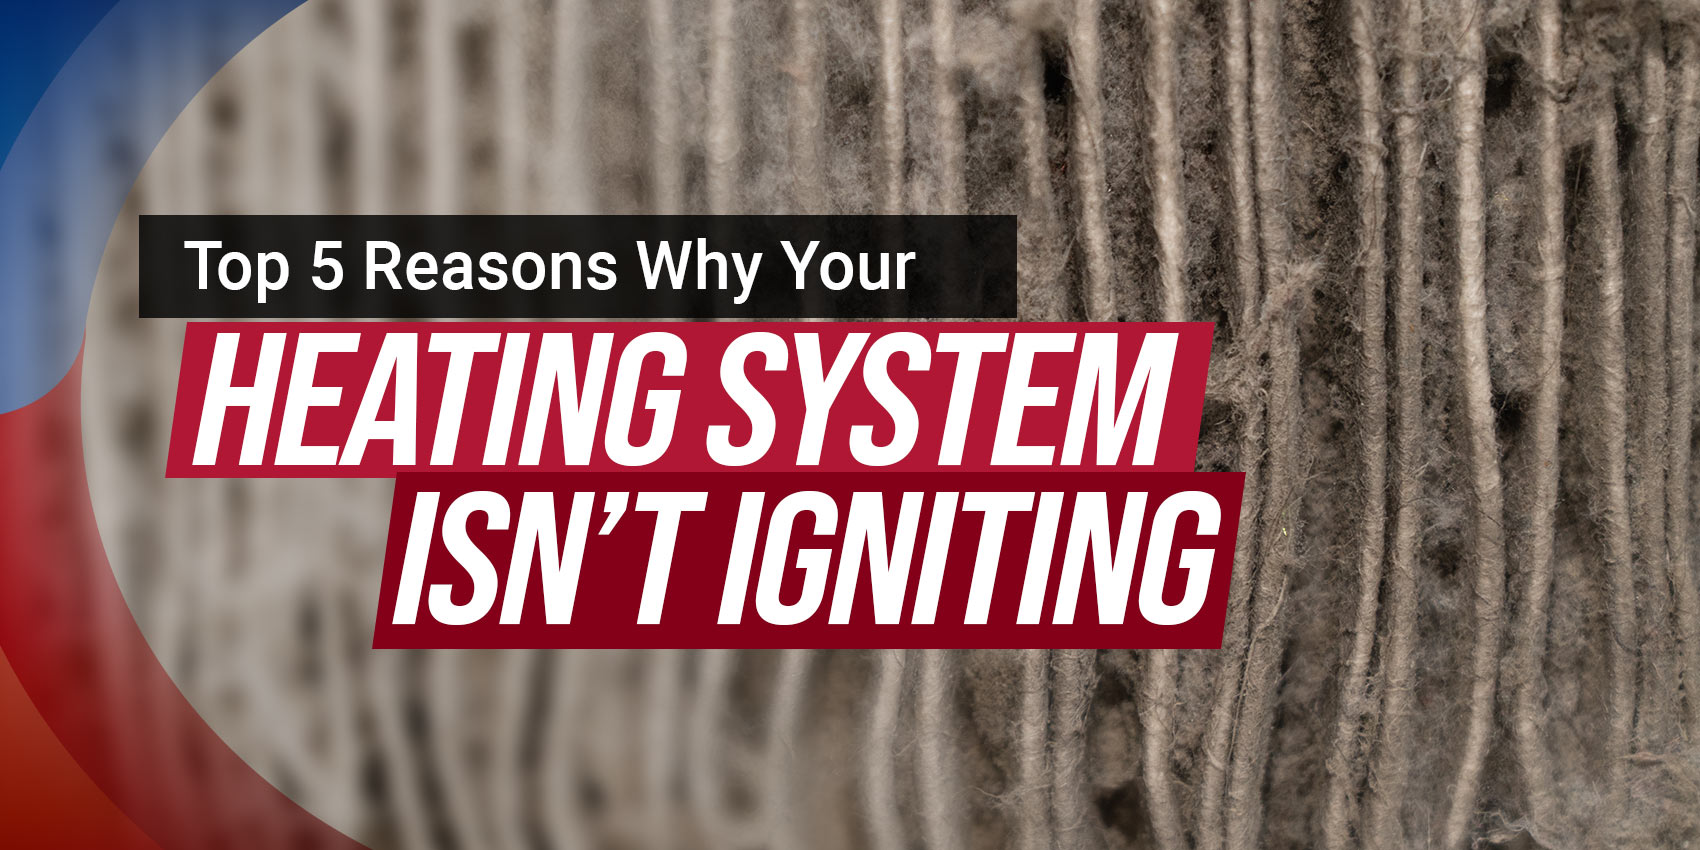 Top 5 Reasons Why Your Heating System Isn't Igniting